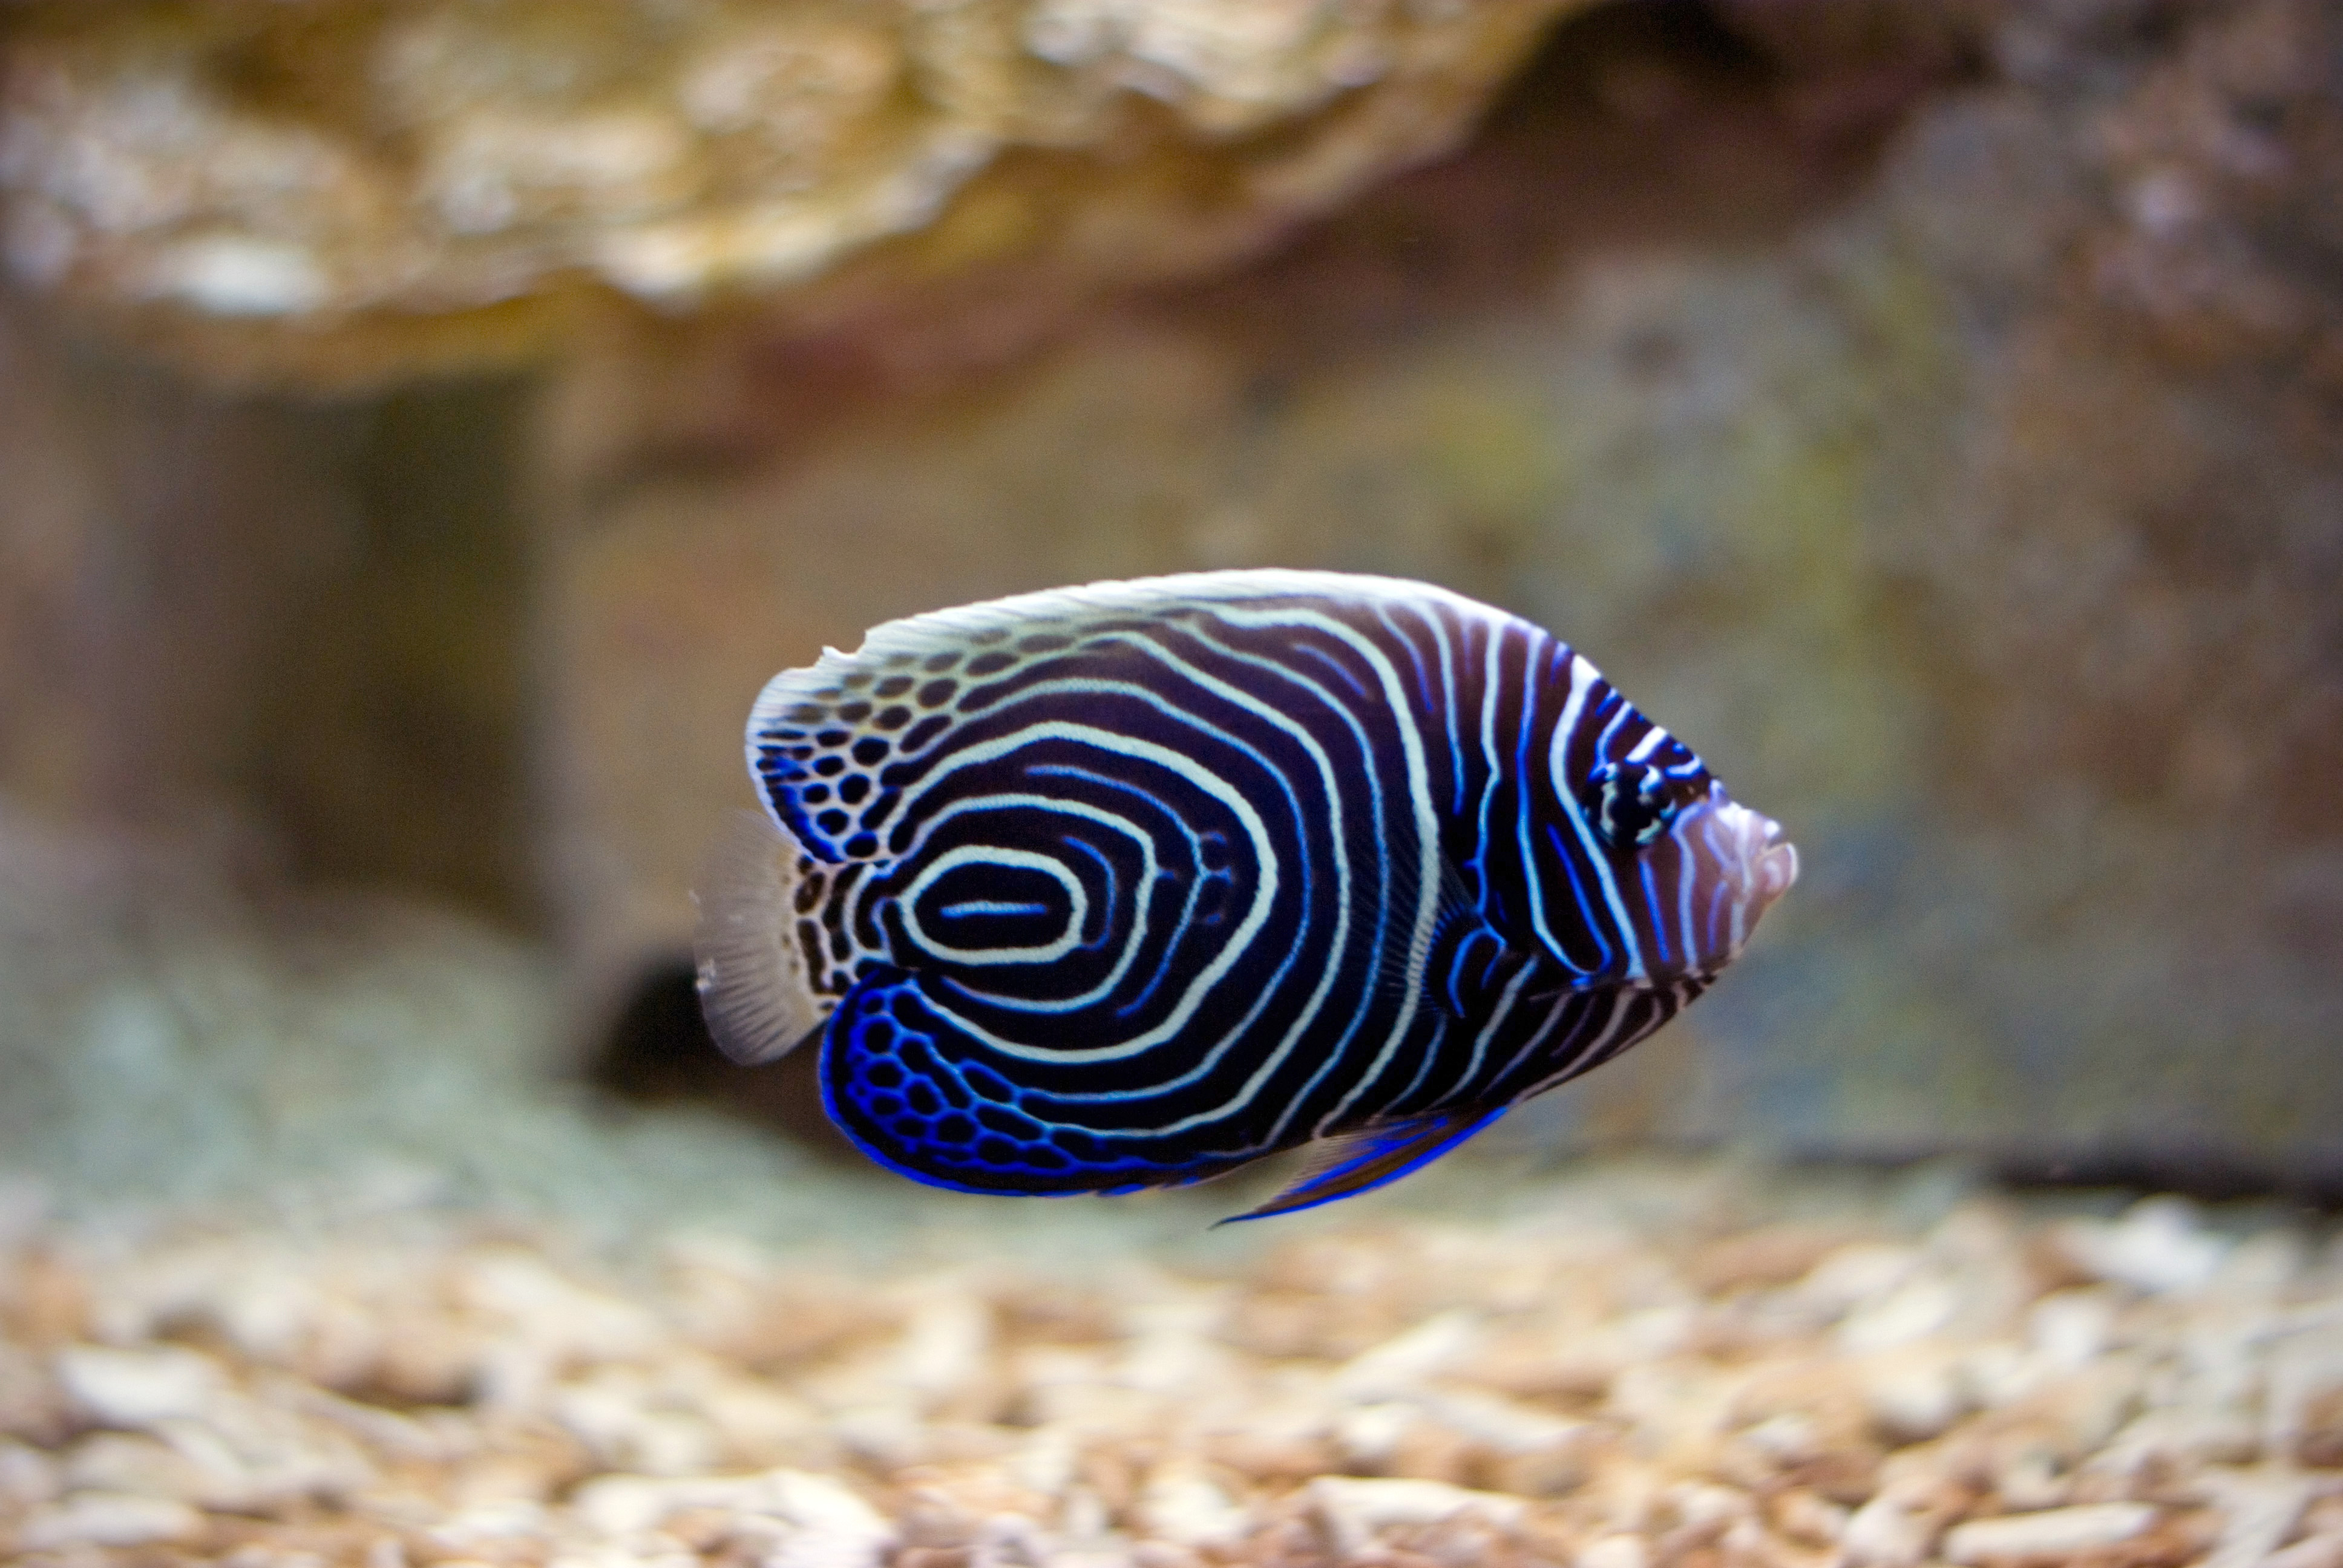 a fish All fish share two traits: they live in water and they have a backbone—they are vertebrates apart from these similarities, however, many of the species in this group differ markedly from one another.